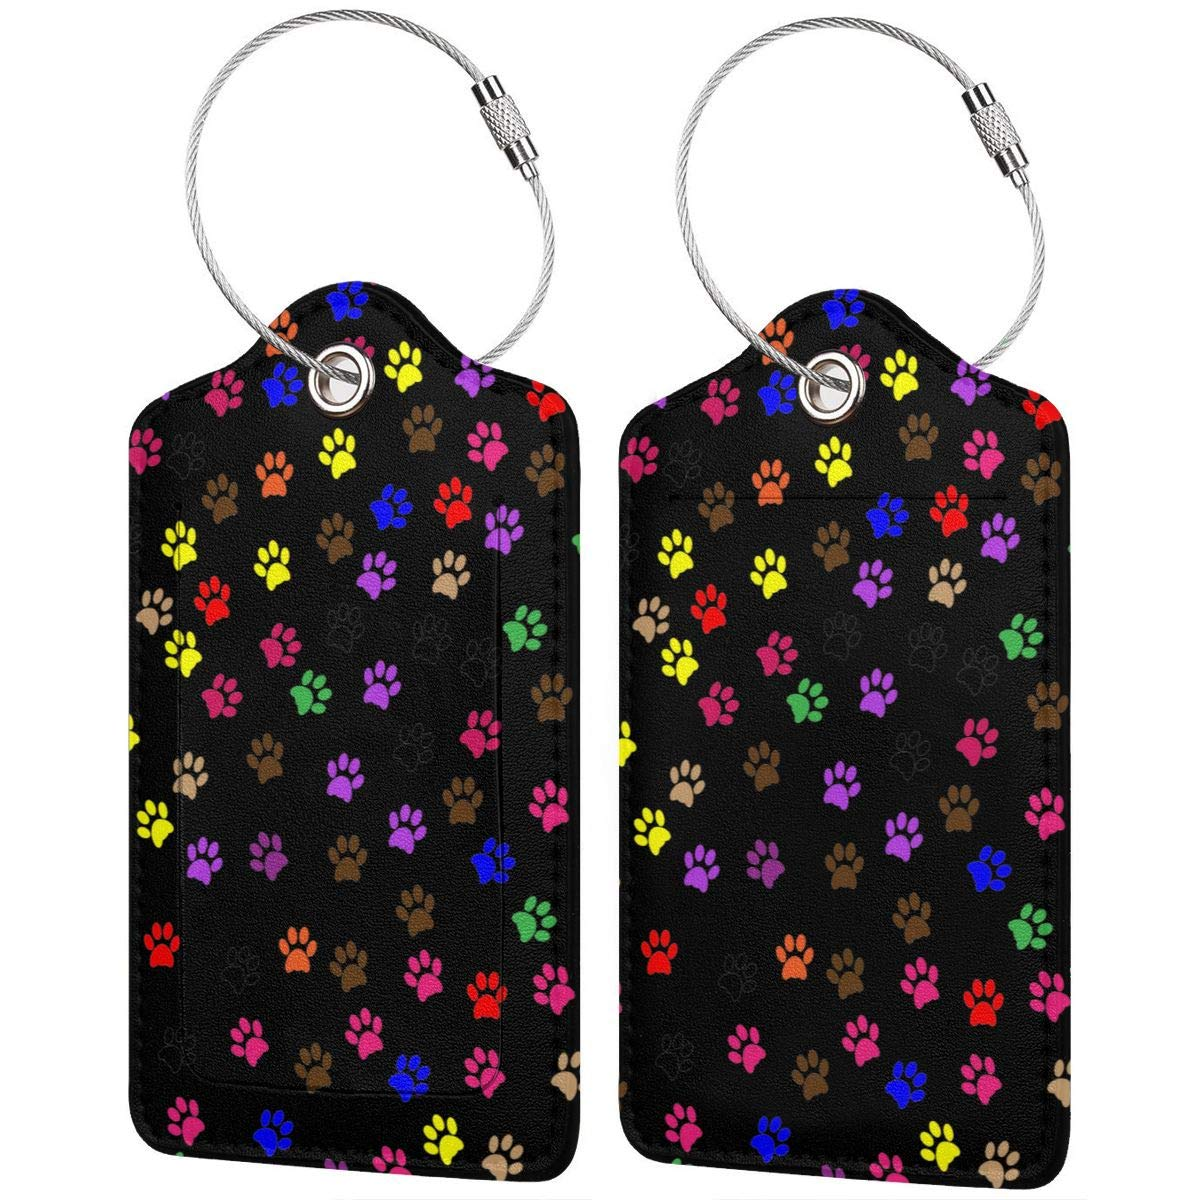 GoldK Dog Paw Prints Leather Luggage Tags Baggage Bag Instrument Tag Travel Labels Accessories with Privacy Cover